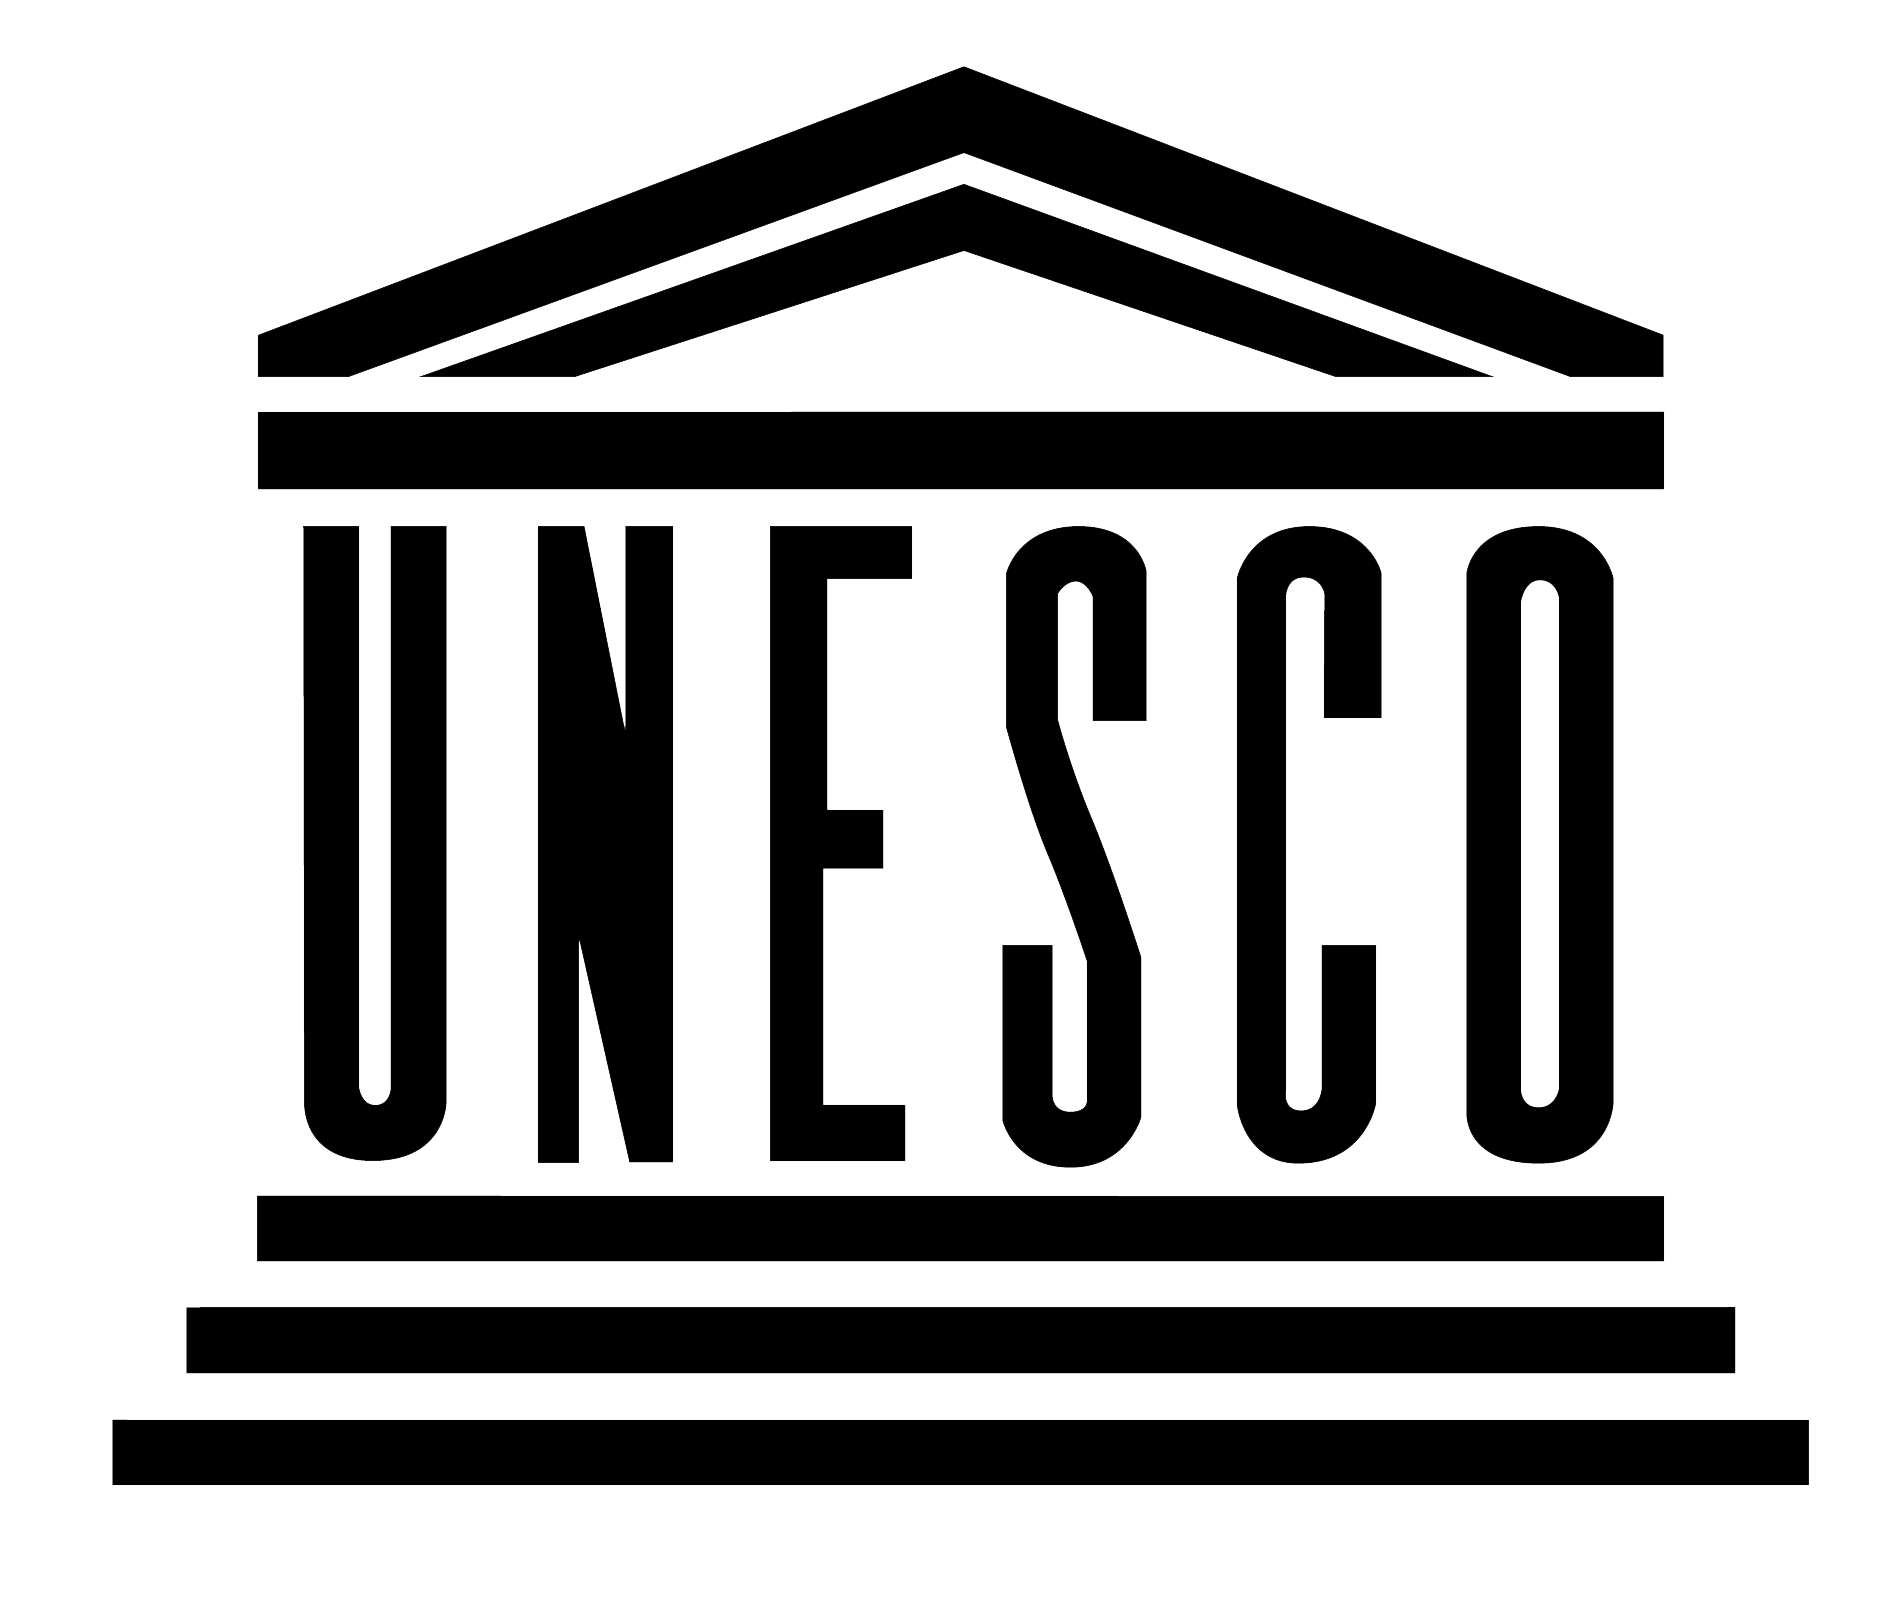 Unesco Logo Related Keywords & Suggestions - Unesco Logo Long Tail ...